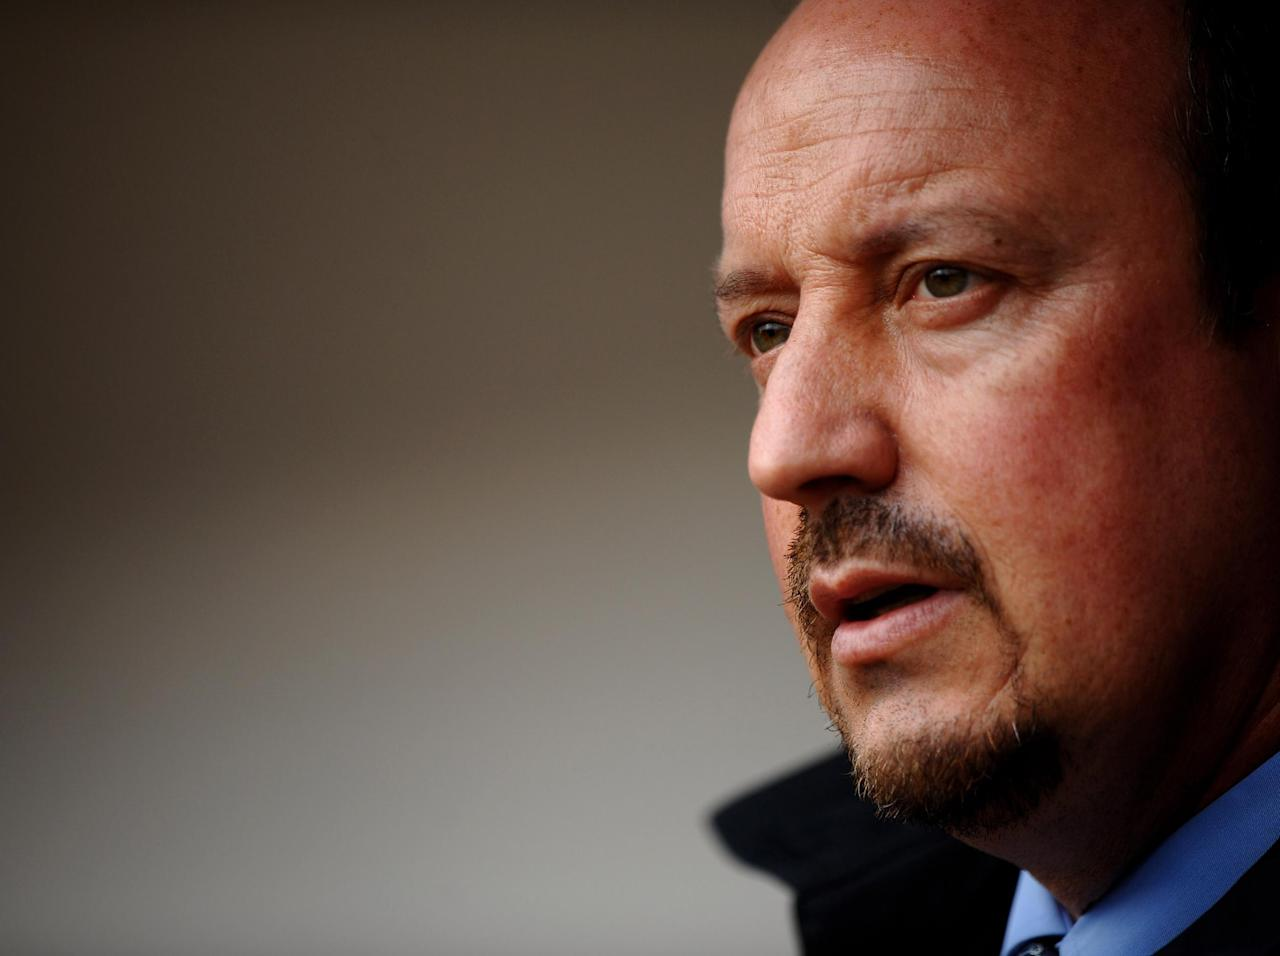 Rafa Benitez will stay as Newcastle manager for now but is fast losing patience with club's transfer strategy